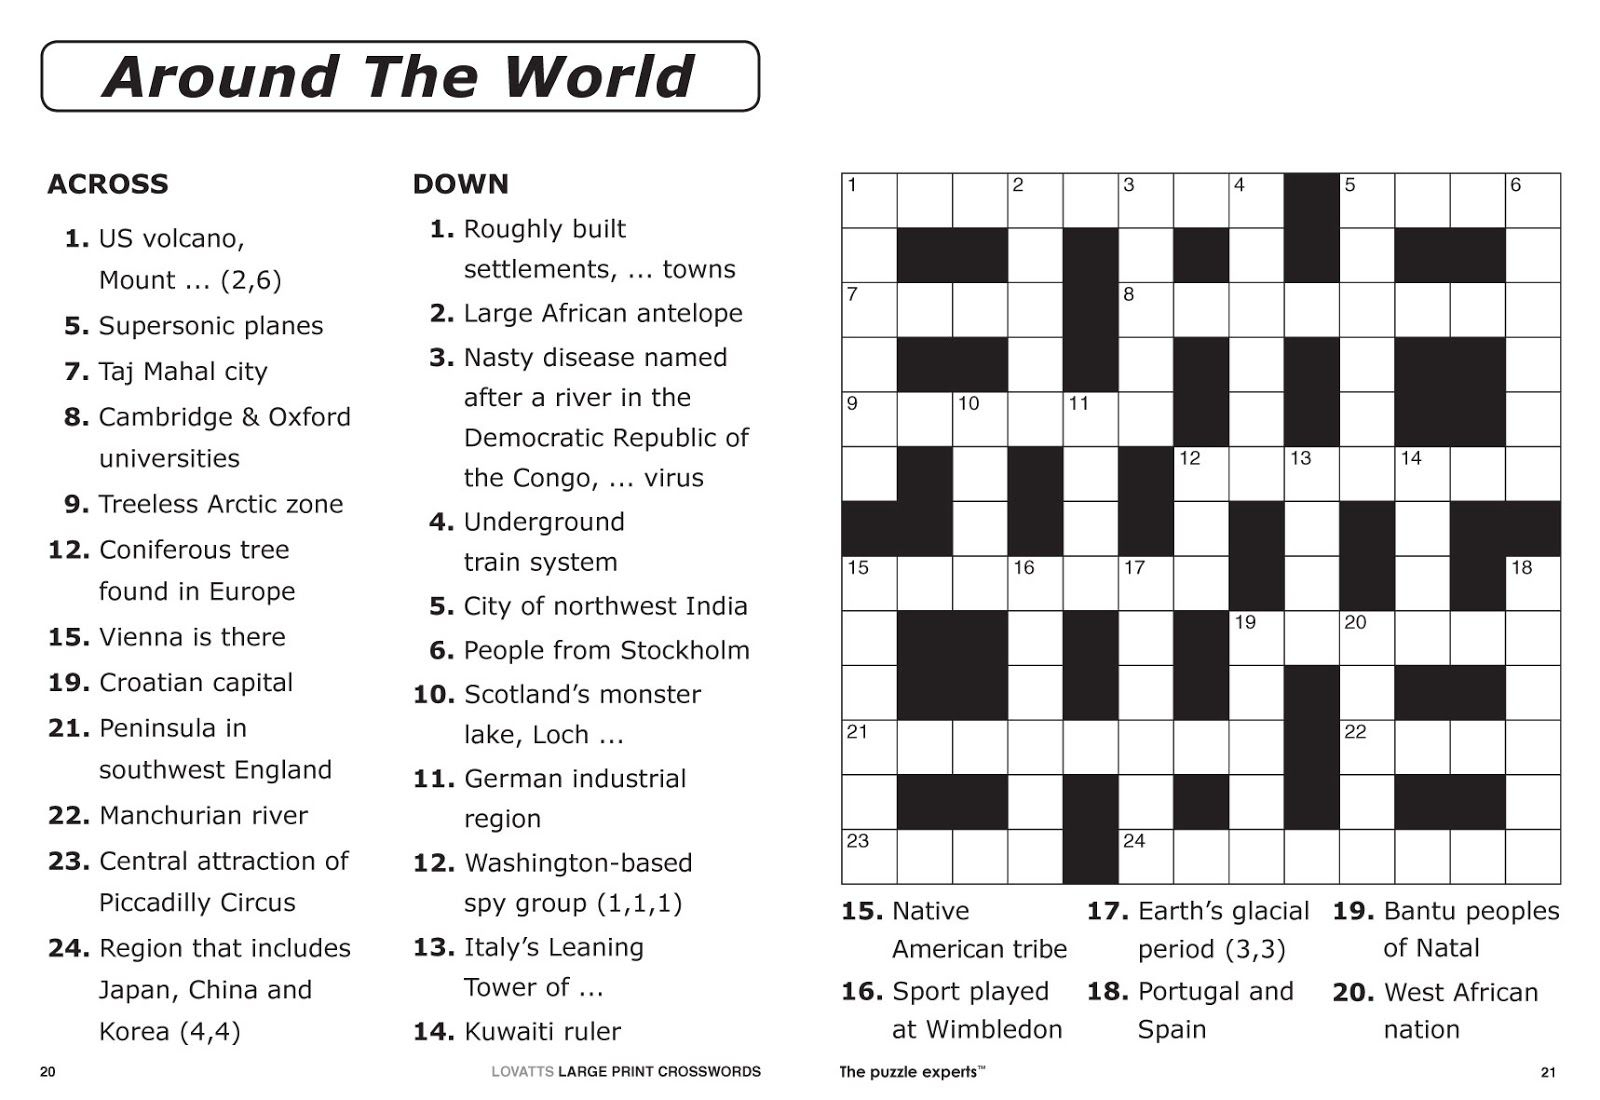 Easy Printable Crossword Puzzles | Elder Care & Dementia Care - Free - Easy Printable Crossword Puzzles With Answers